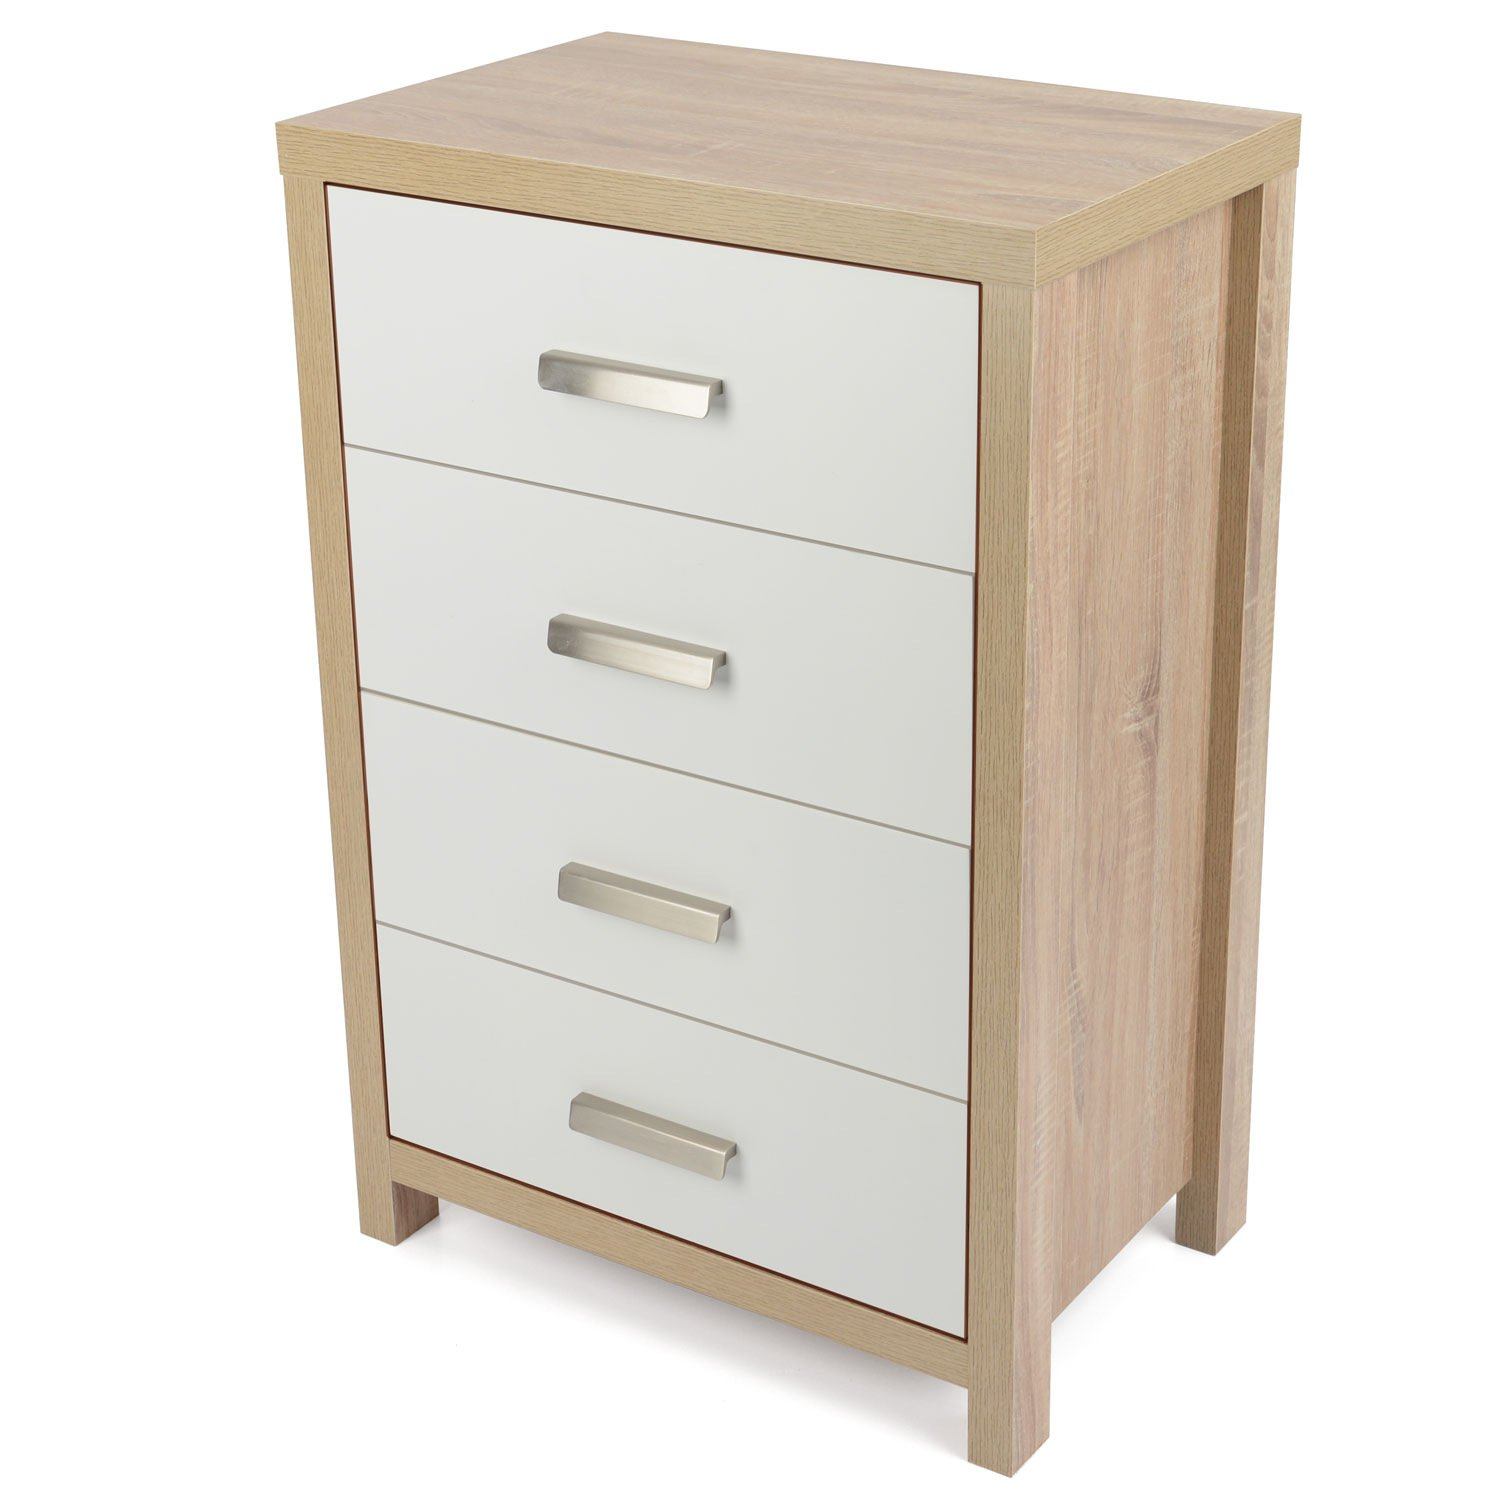 Oak Bedroom Chest Of Drawers Bianco Oak Effect White Wood 3 Drawer Chest Of Drawers Modern